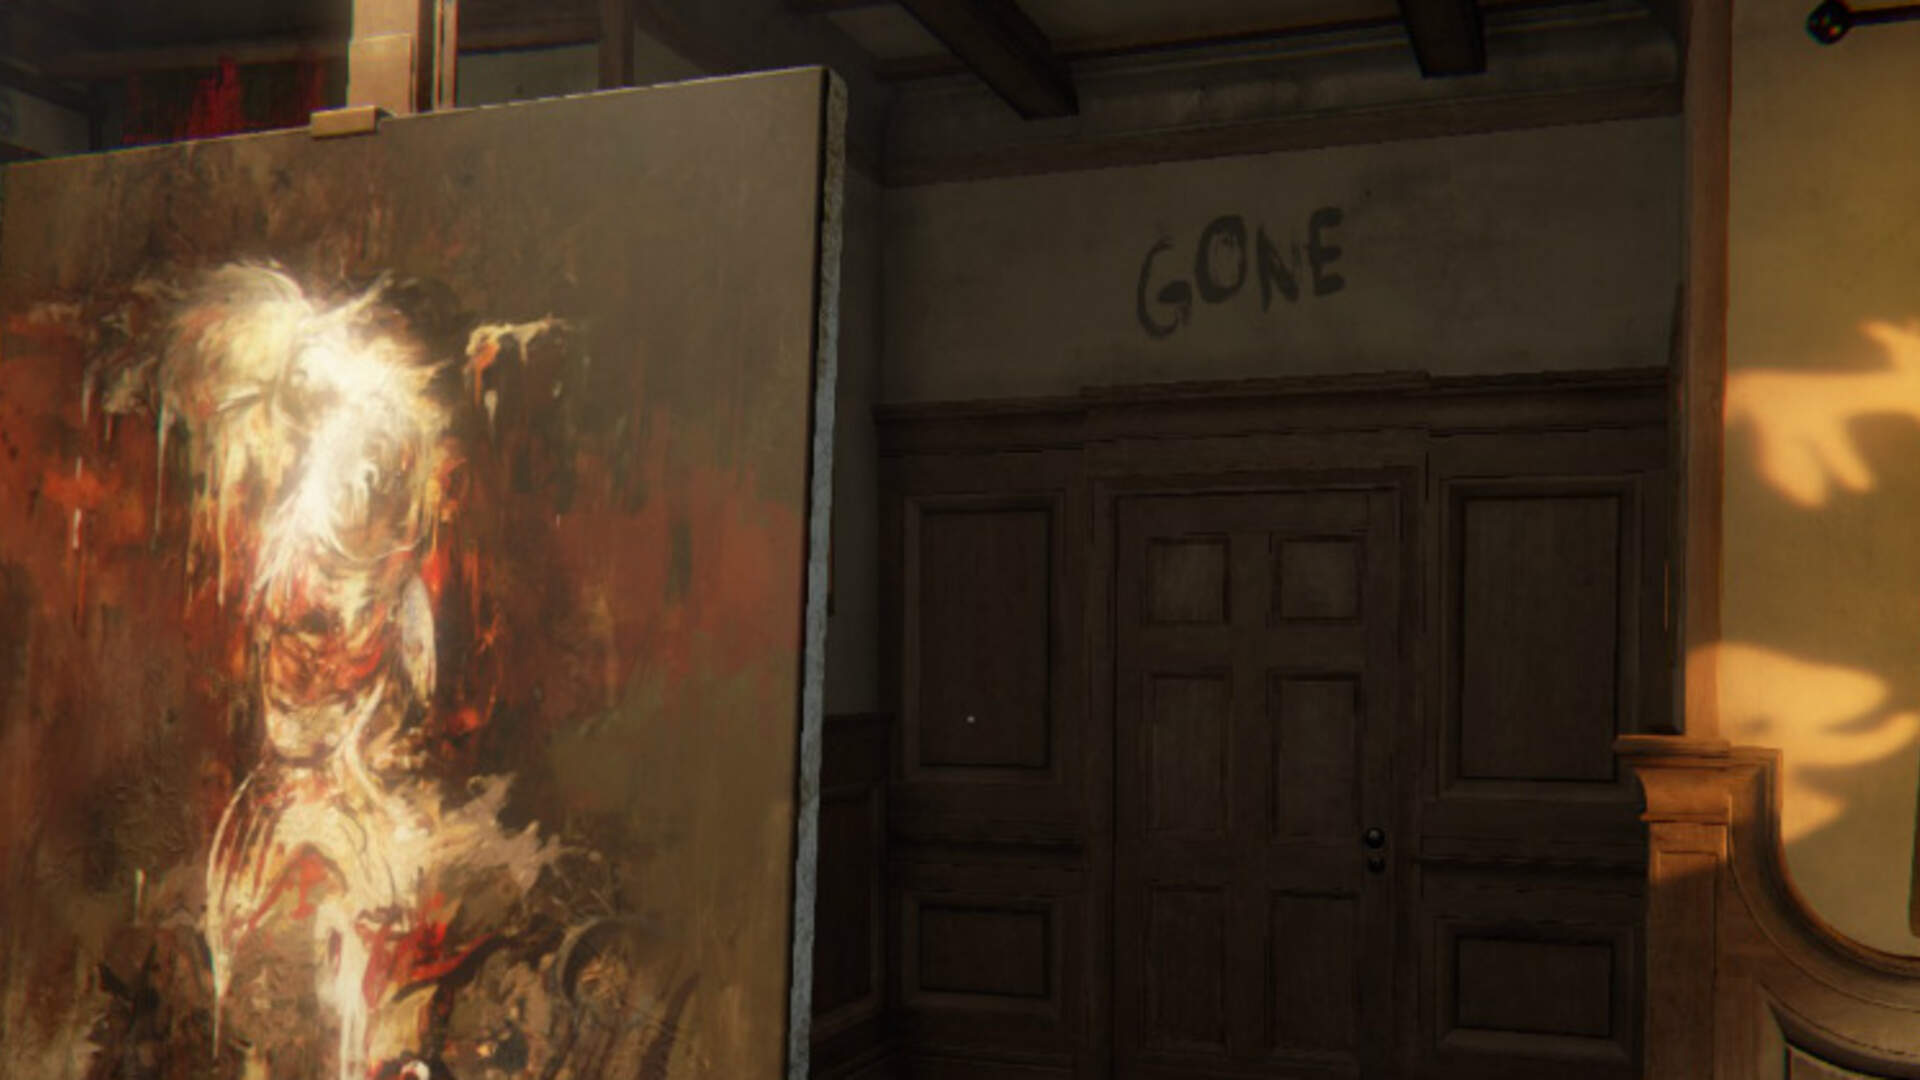 Layers of Fear PC Review: A Fun House, Not a Thrill Ride